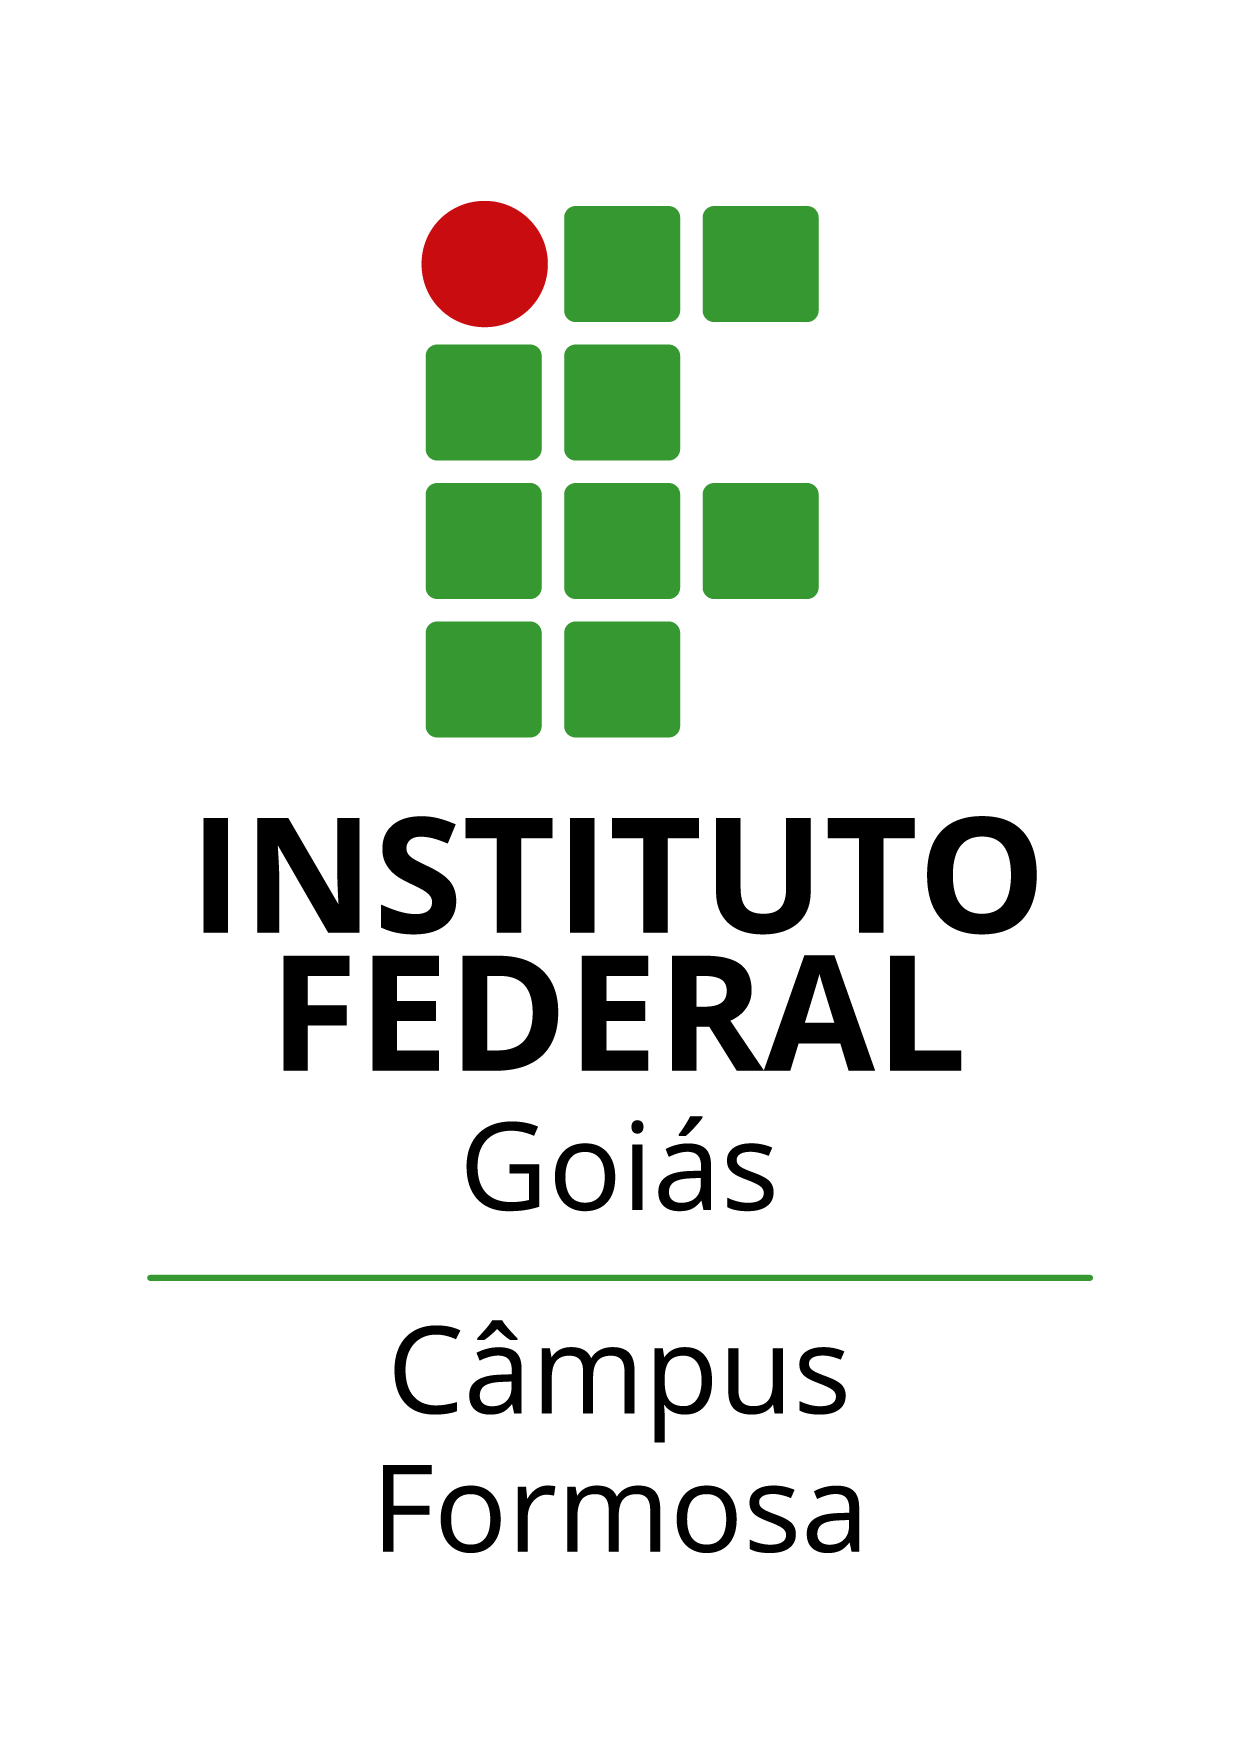 Logo do IFG - Câmpus Formosa